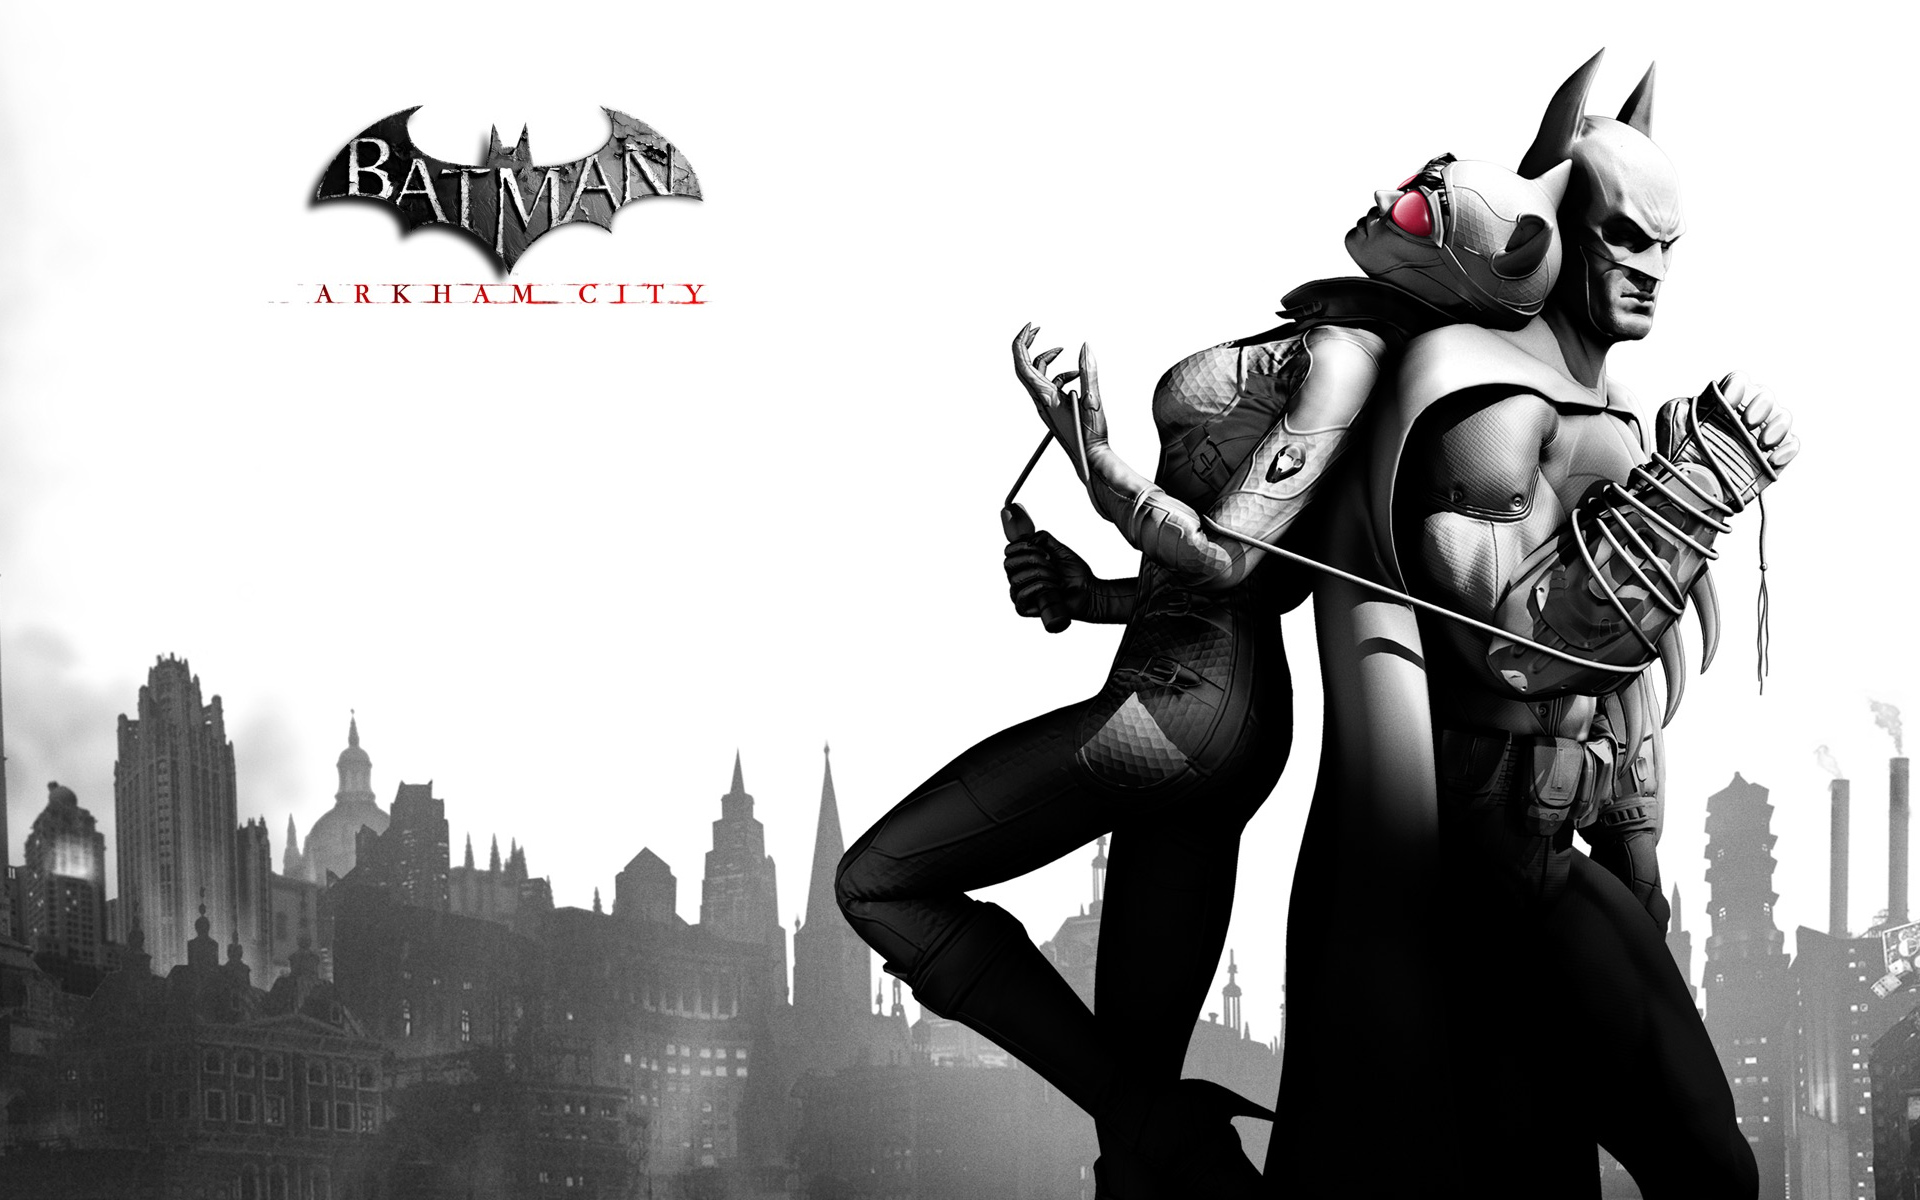 Survey leaks Batman Arkham Remaster for PS4 and Xbox One; confirms upgraded visuals, lighting and more | GearNuke